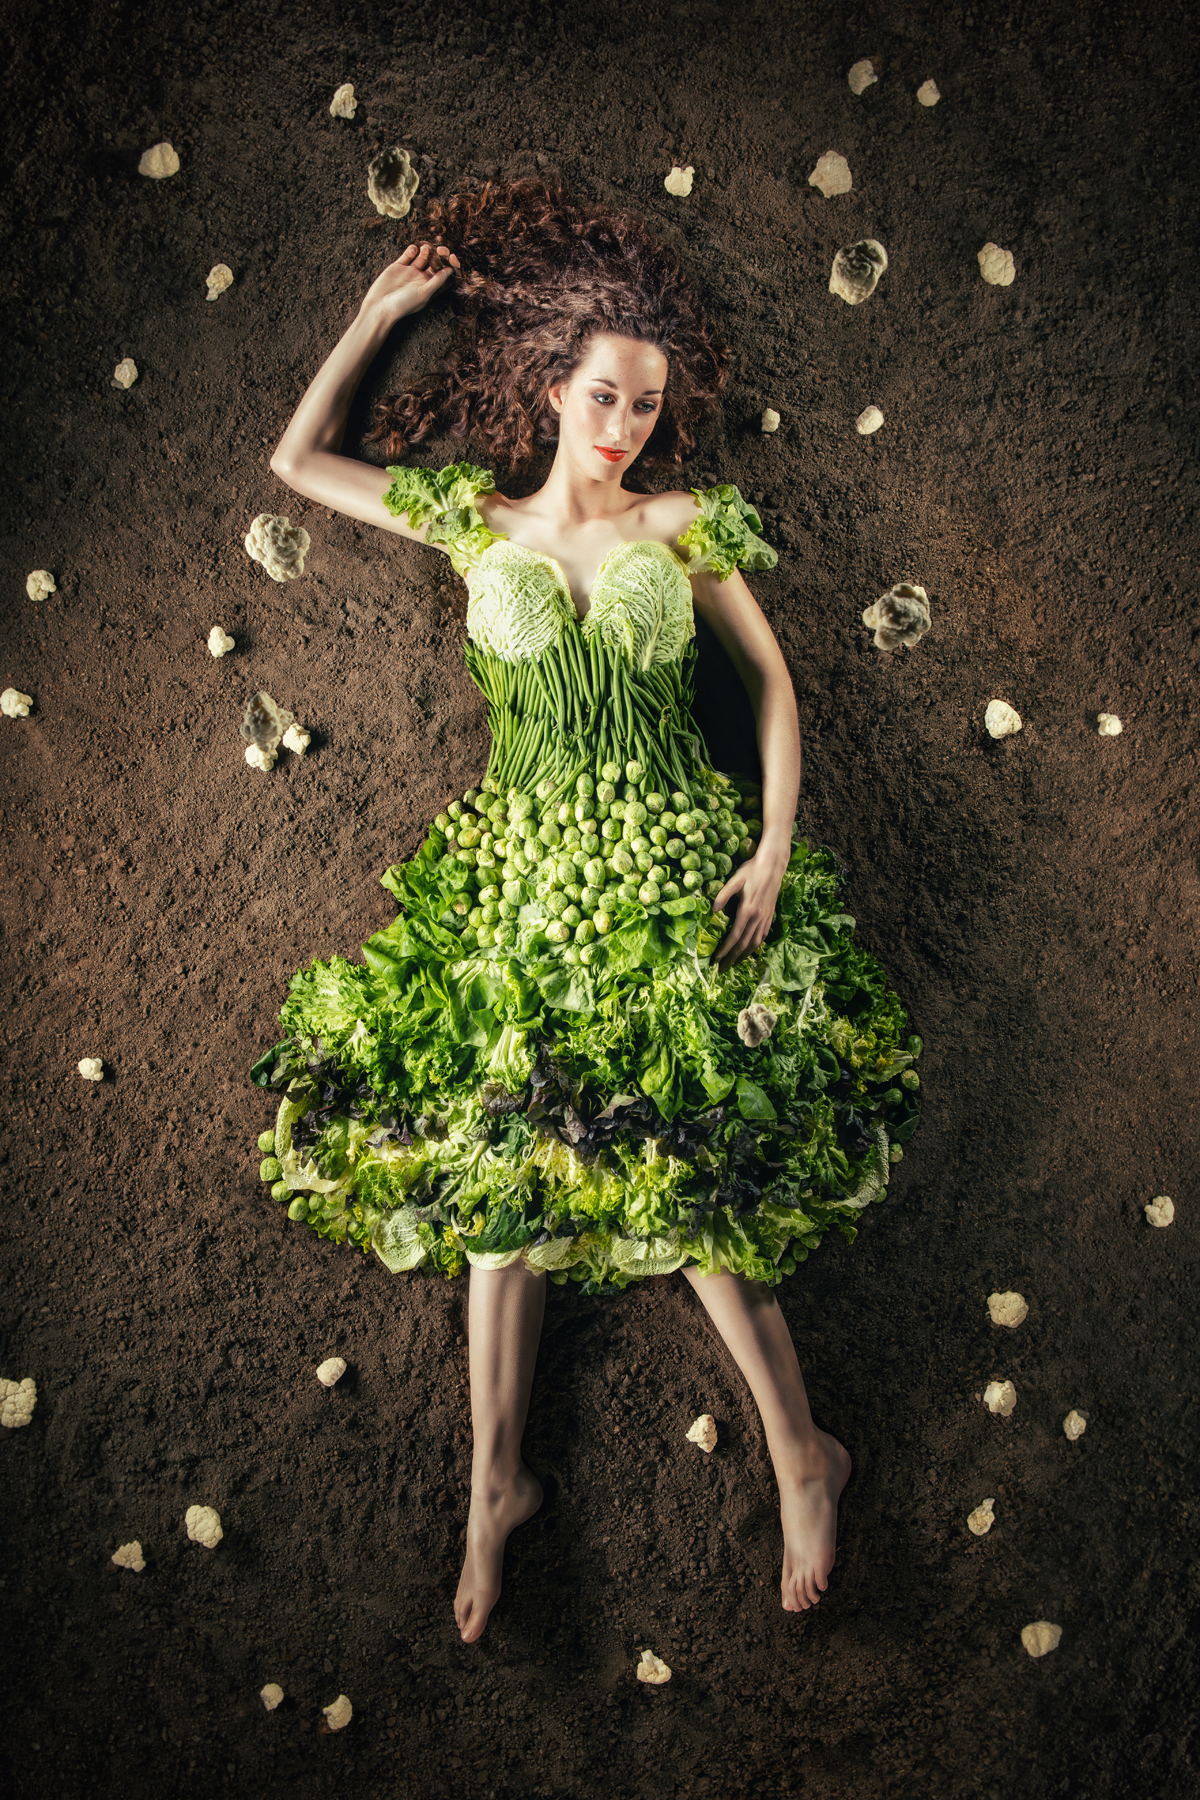 vegetable-fashion-Gemüsekleid-silvana-Arnold-mittel